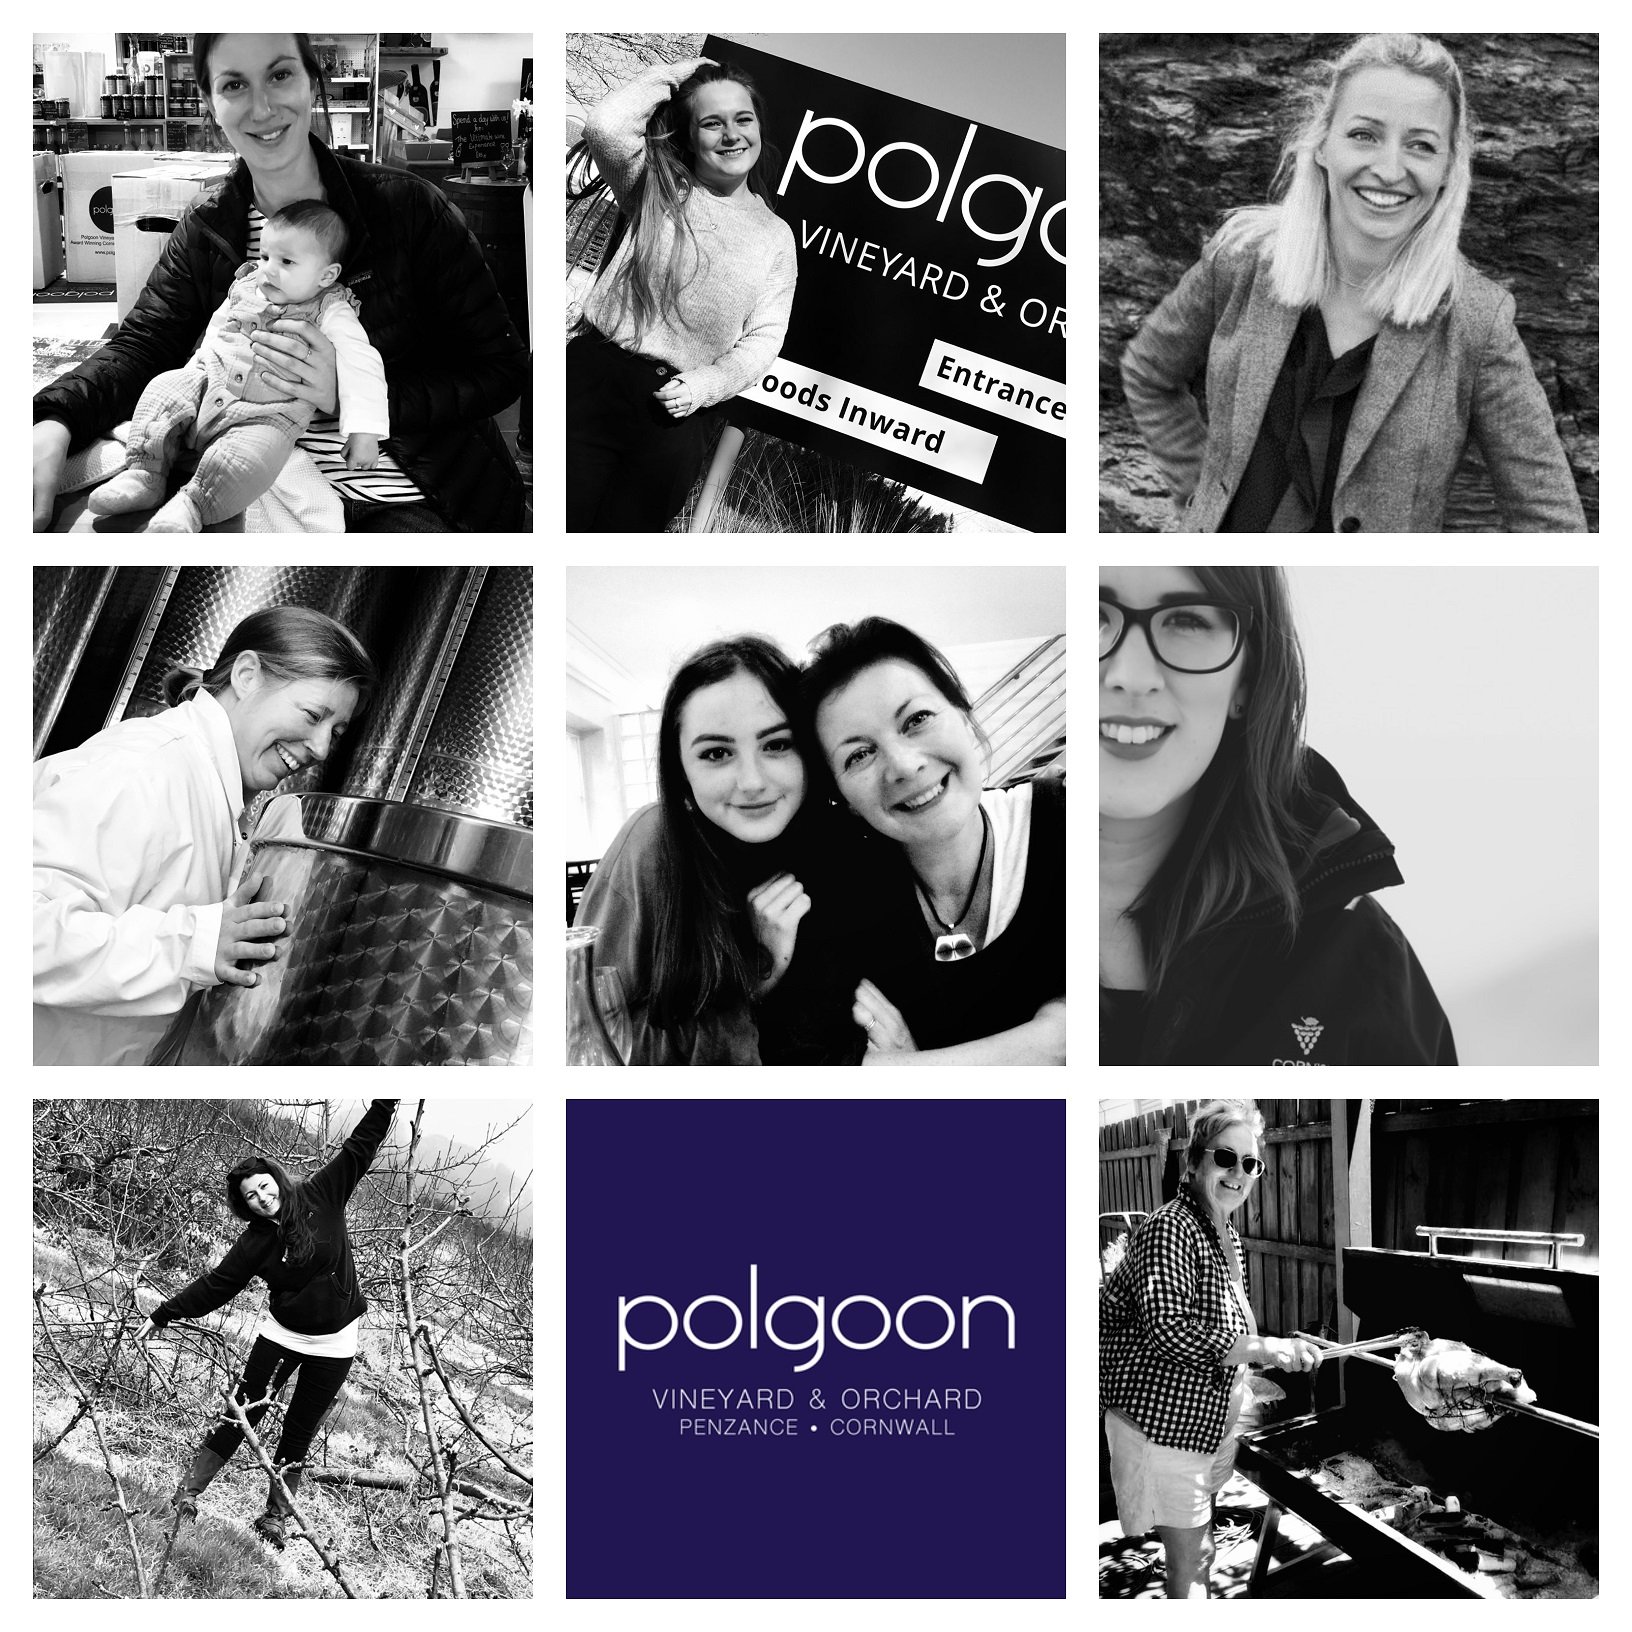 Introducing The Women At Polgoon